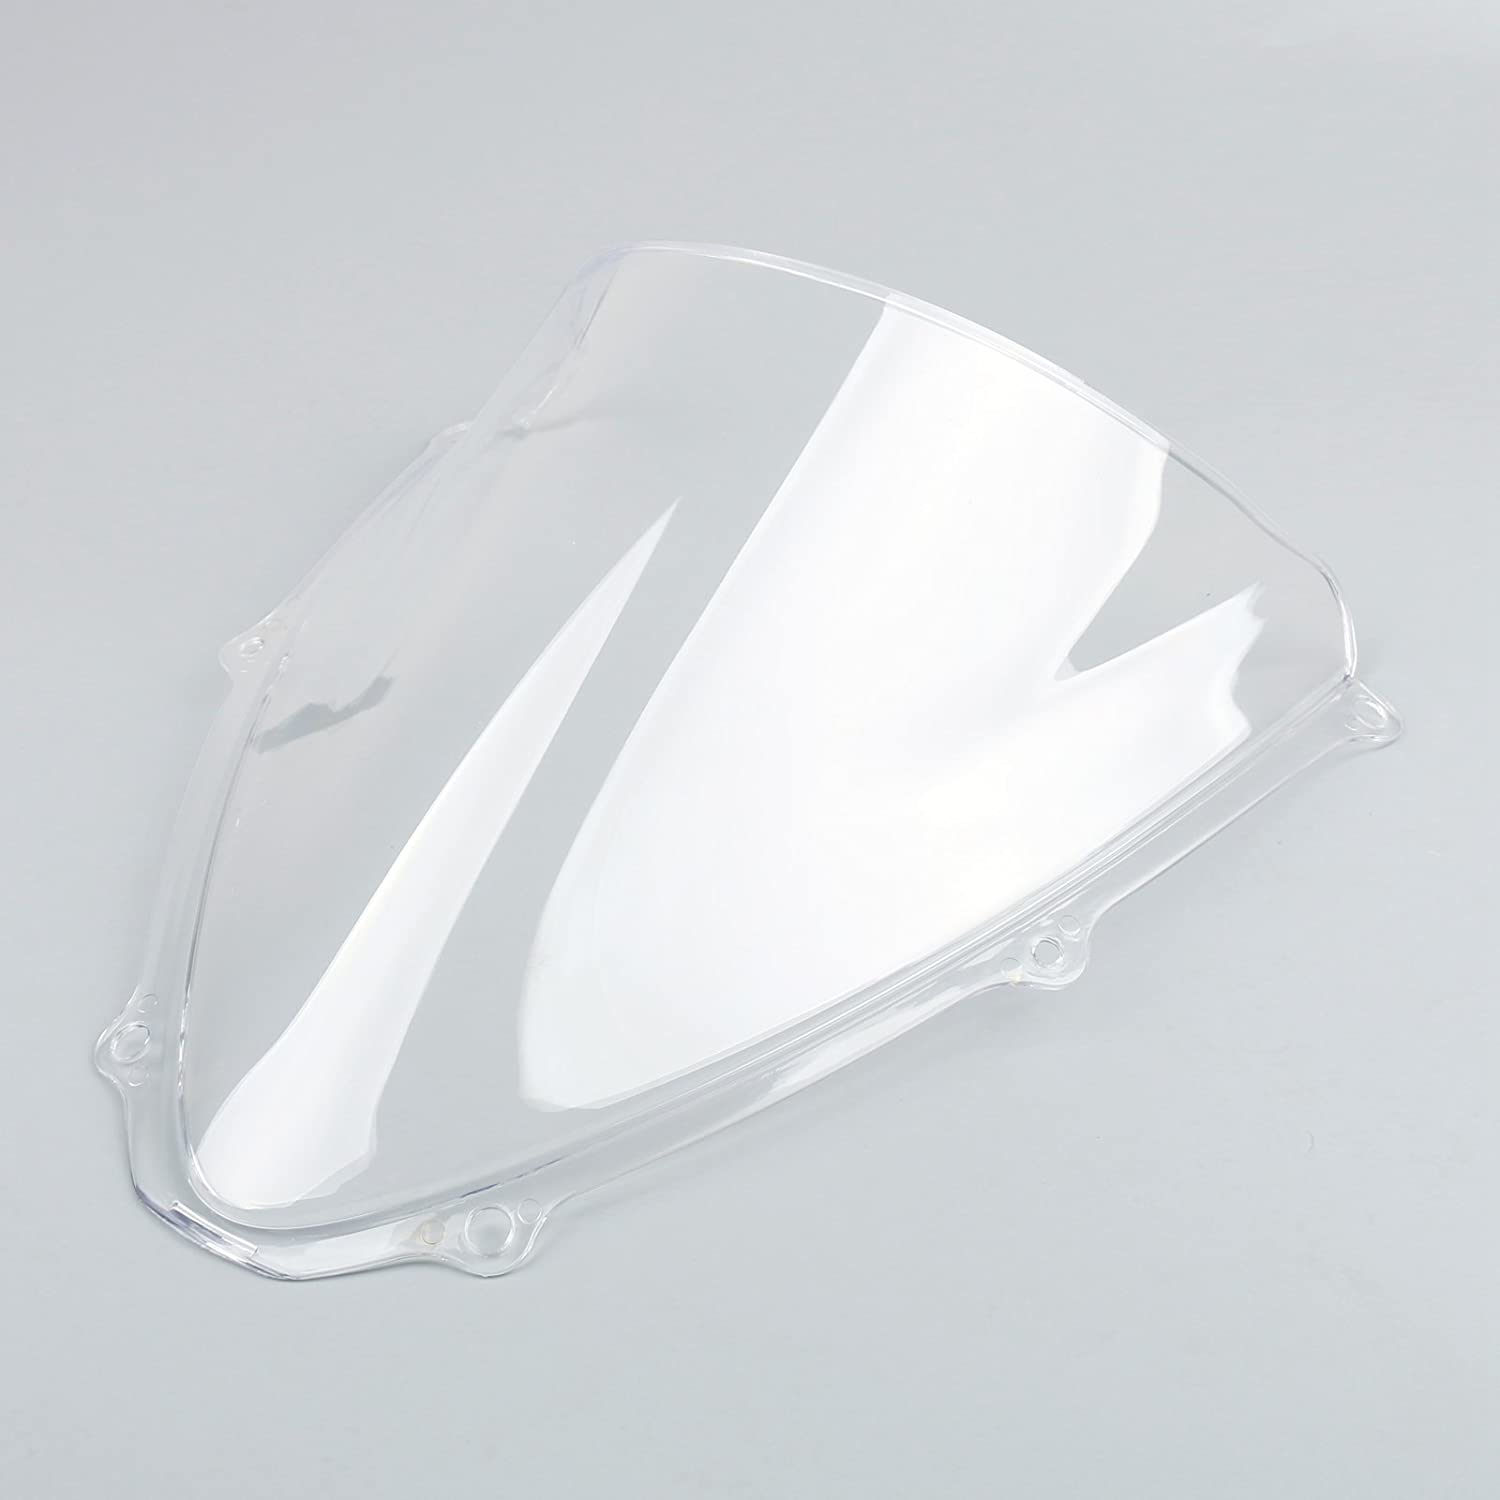 Areyourshop Windshield WindScreen Double Bubble For GSXR 600//750 2006-2007 K6